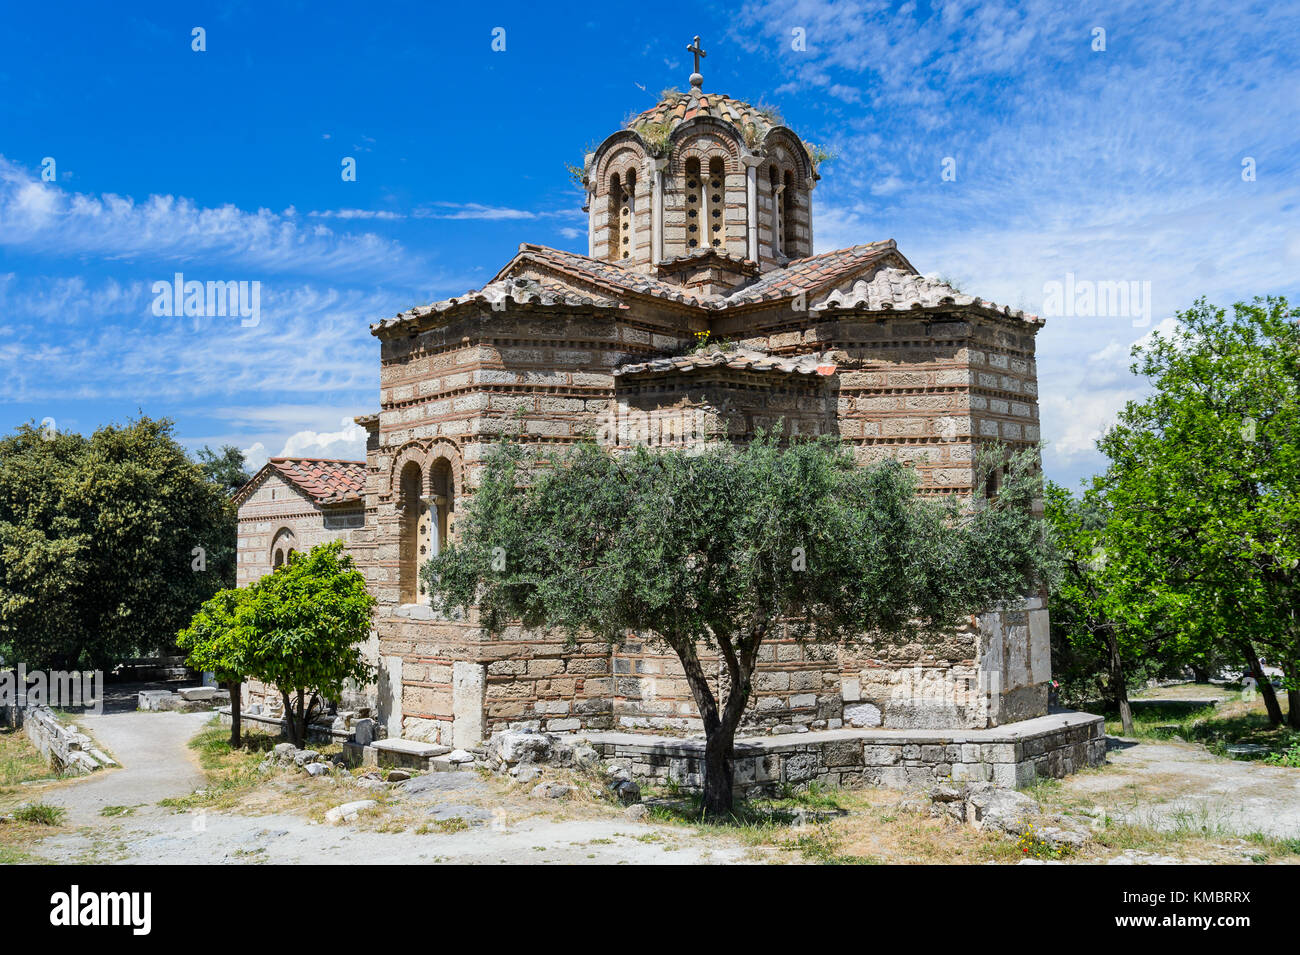 The church of the Holy Apostles in Athens, Greece Stock Photo